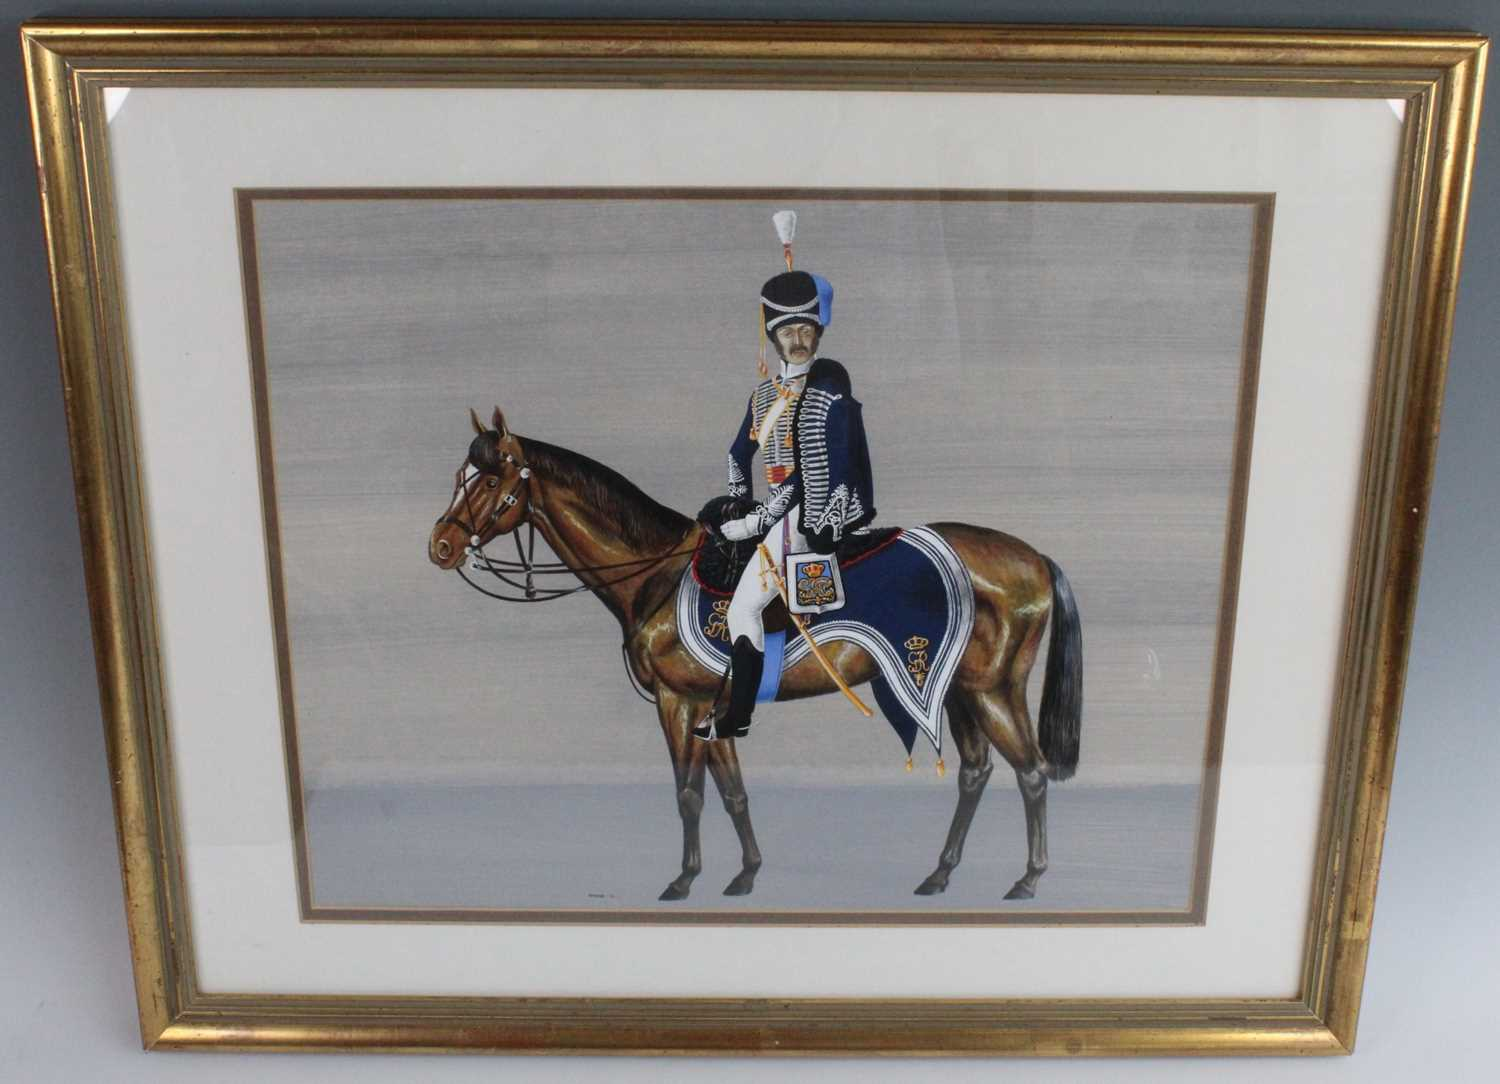 Spear, (20th century), British Officer of the Napoleonic Wars mounted on horseback, gouache,